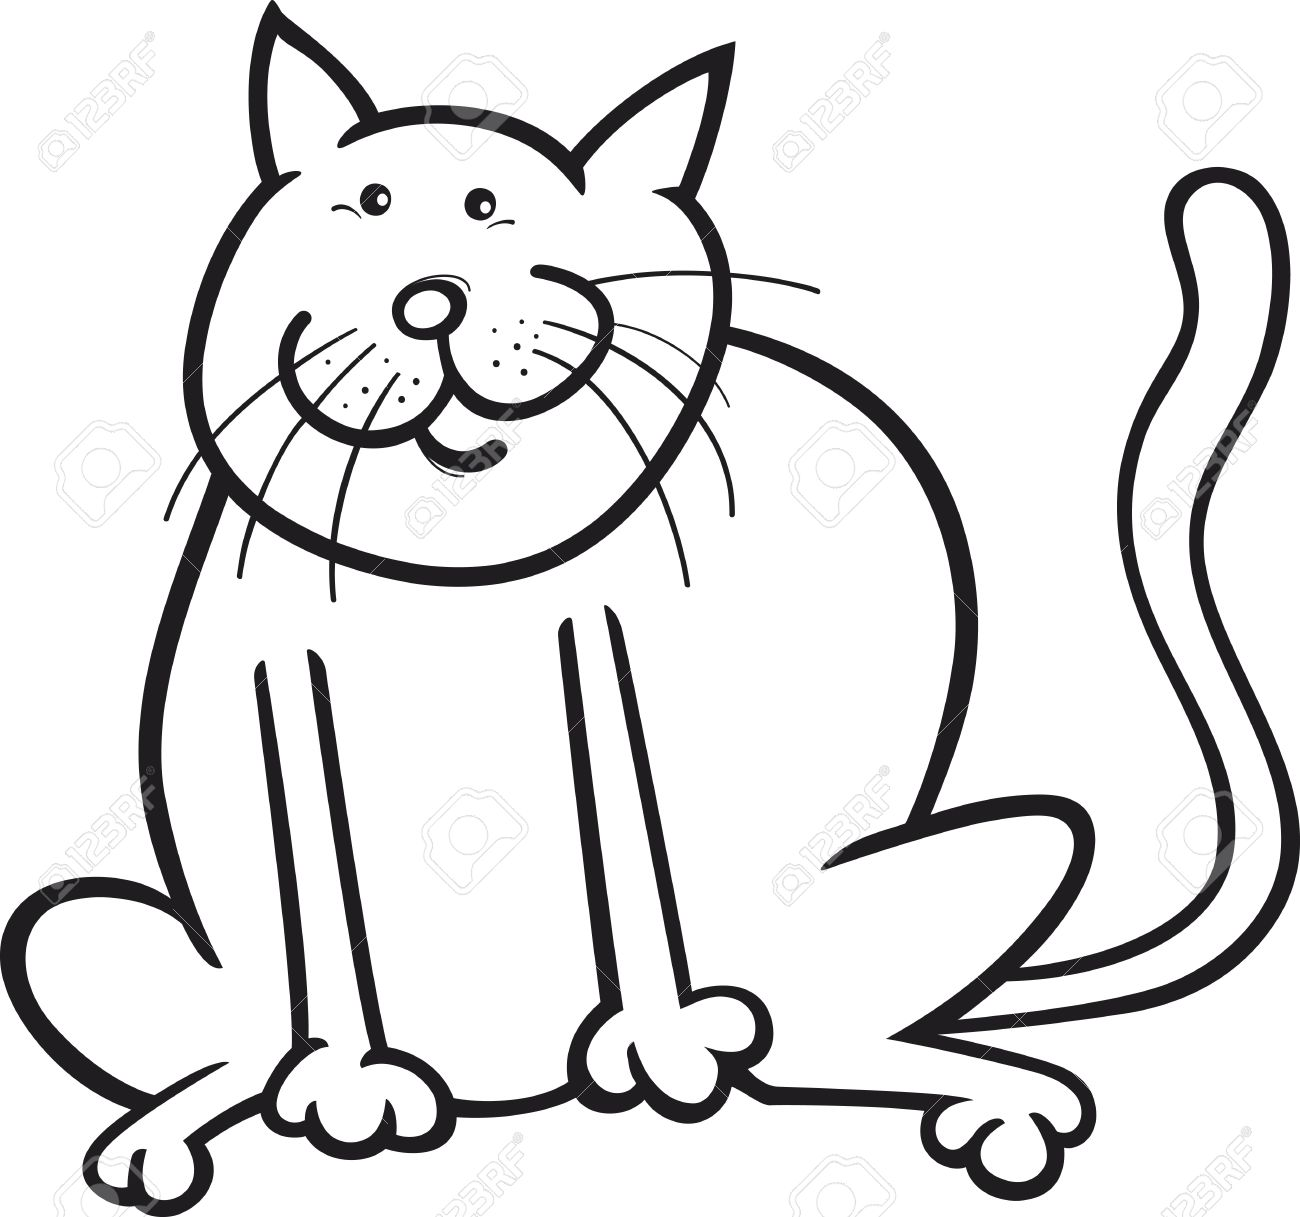 cartoon coloring page illustration of funny sitting cat royalty